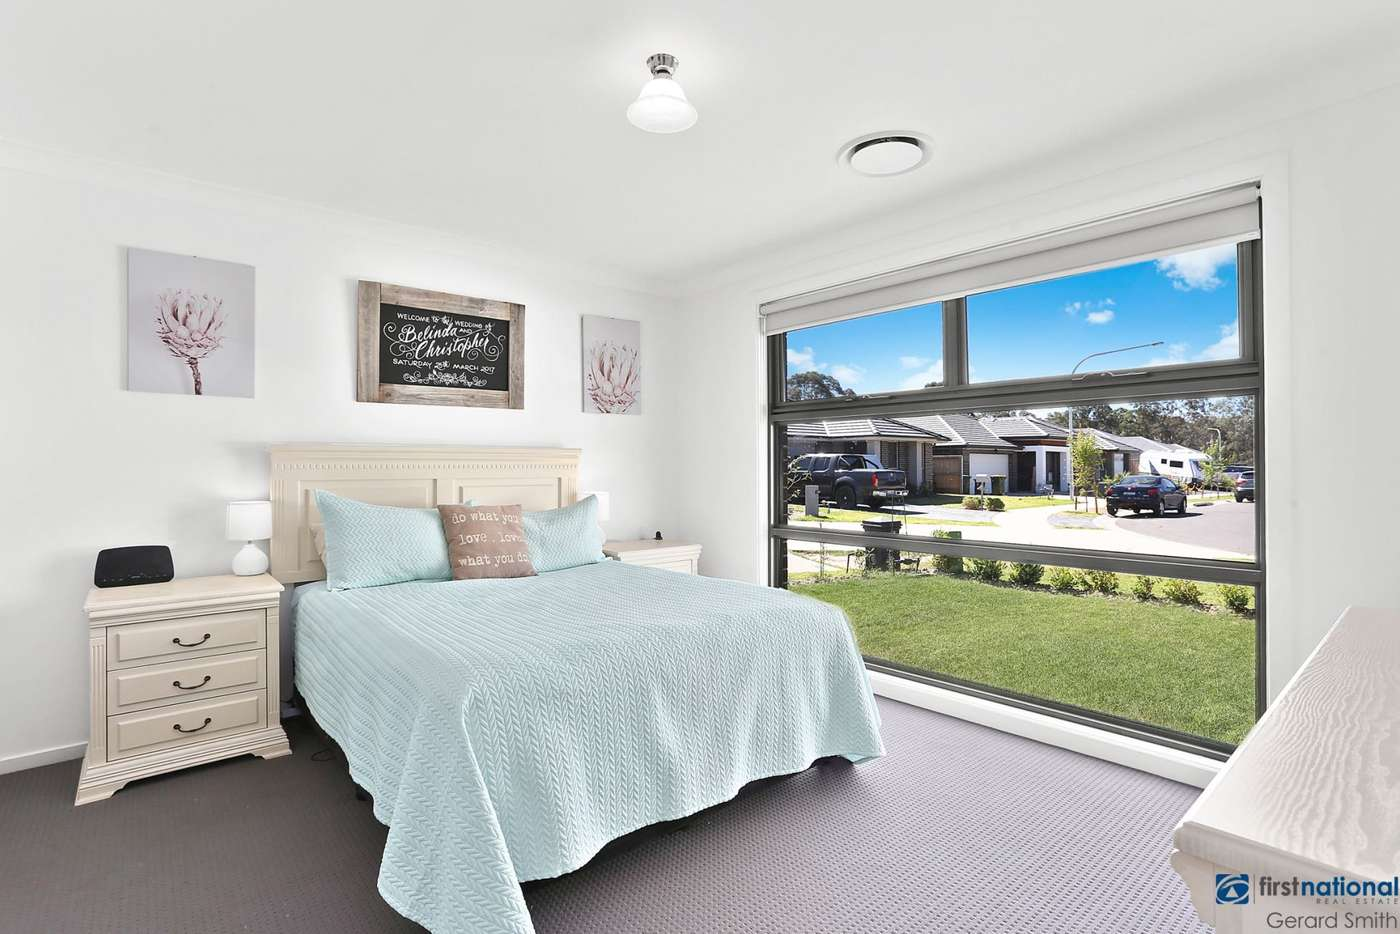 Seventh view of Homely house listing, 13 Barrallier Avenue, Tahmoor NSW 2573